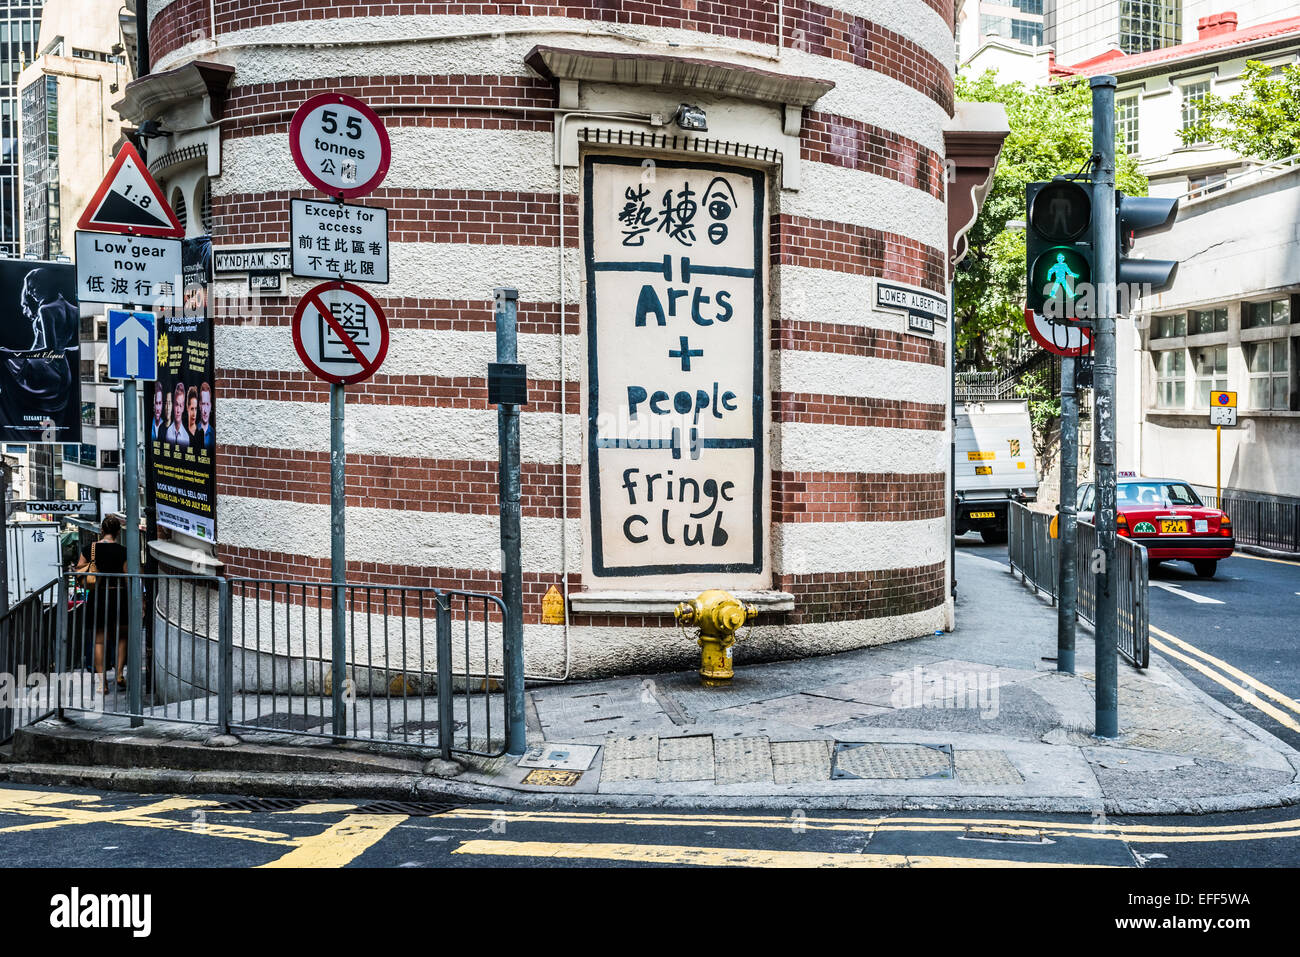 Hong Kong ,China - June 4, 2014: Fringe Club exterior streets at Soho Central Hong Kong - Stock Image